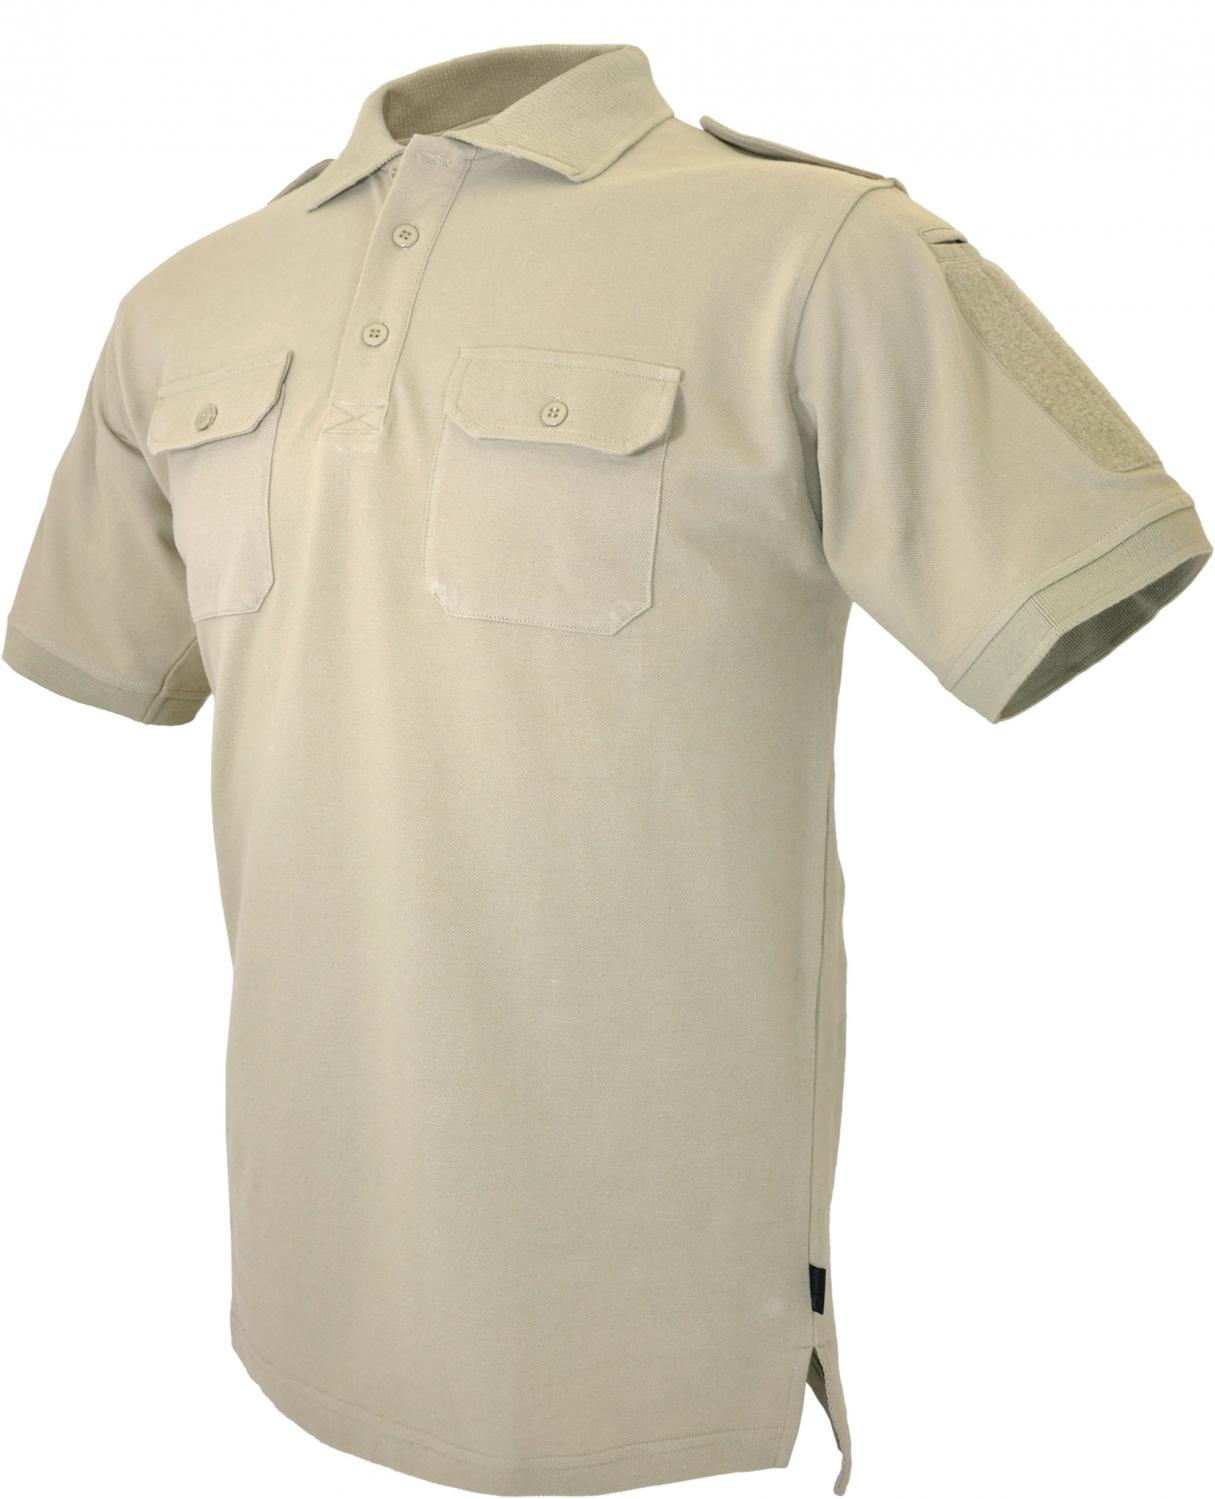 Hazard 4 LEO Uniform Replacement Battle Polo, Tan, 2X Large